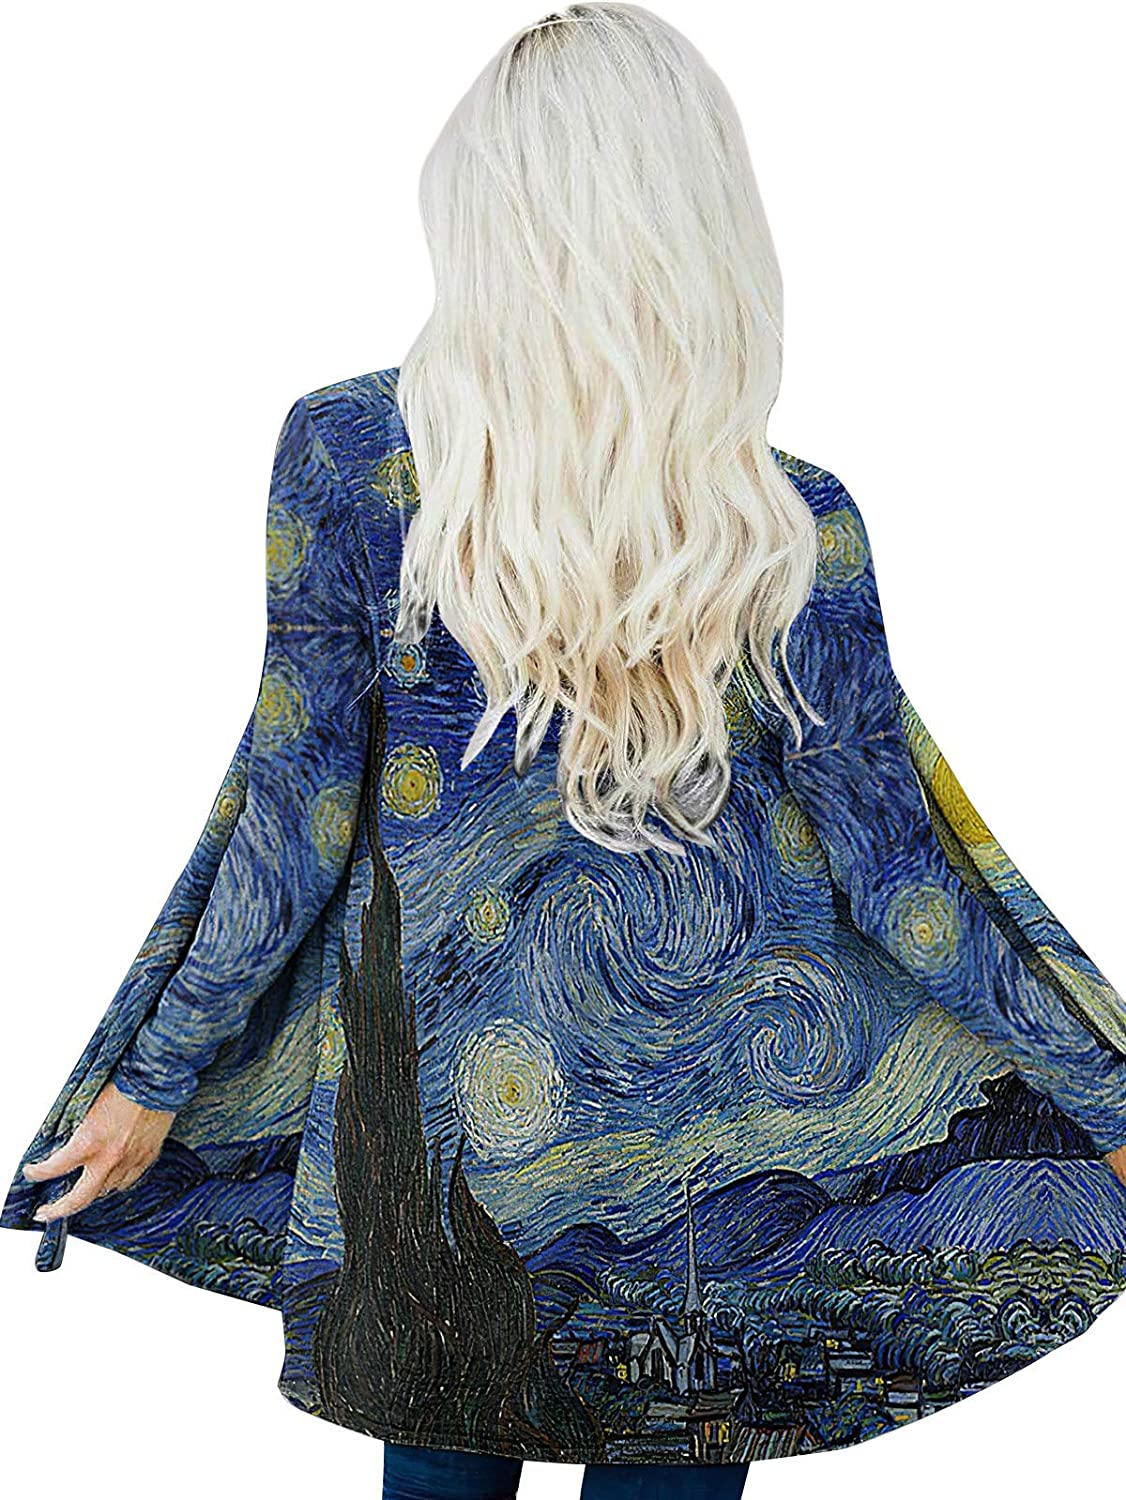 Oil Painting Van Gogh's Award Starry Sky Selling and selling Women Loos Long Cardigans for